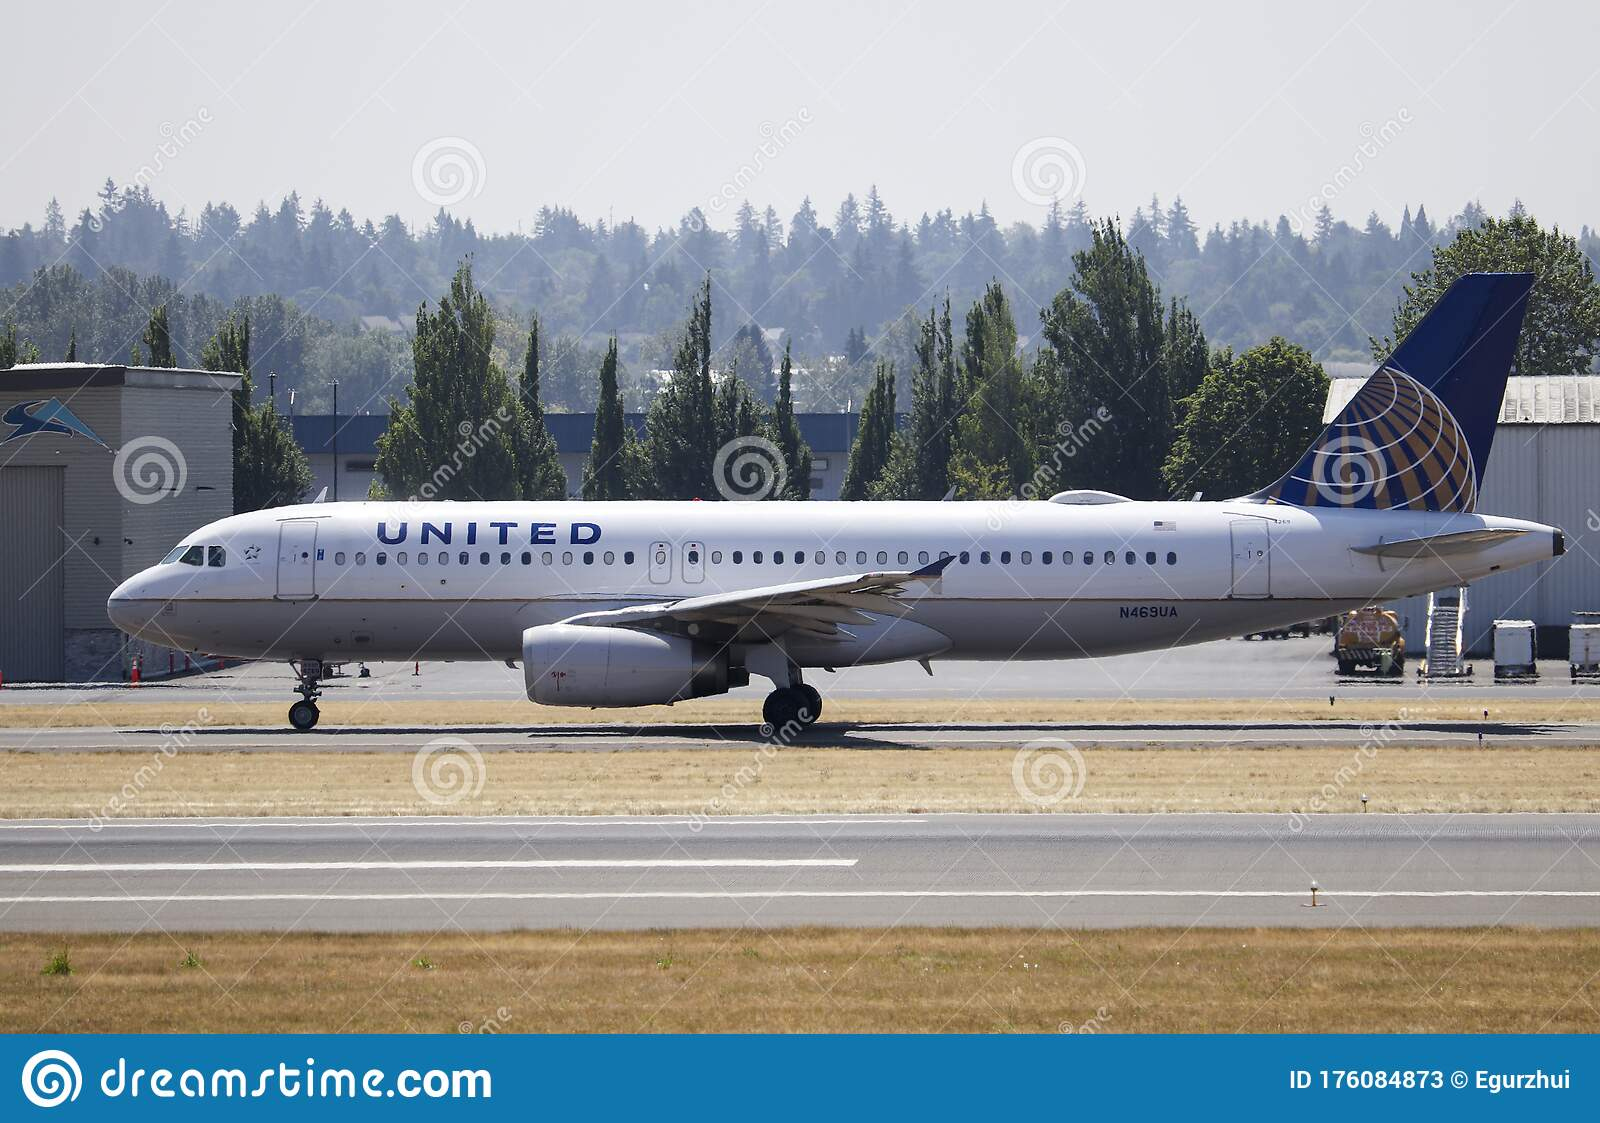 Portland Or Usa Circa 2018 United Airlines Airbus A320 Taxiing To The End Of The Runway For Departure From Portland Editorial Stock Photo Image Of American Aviation 176084873